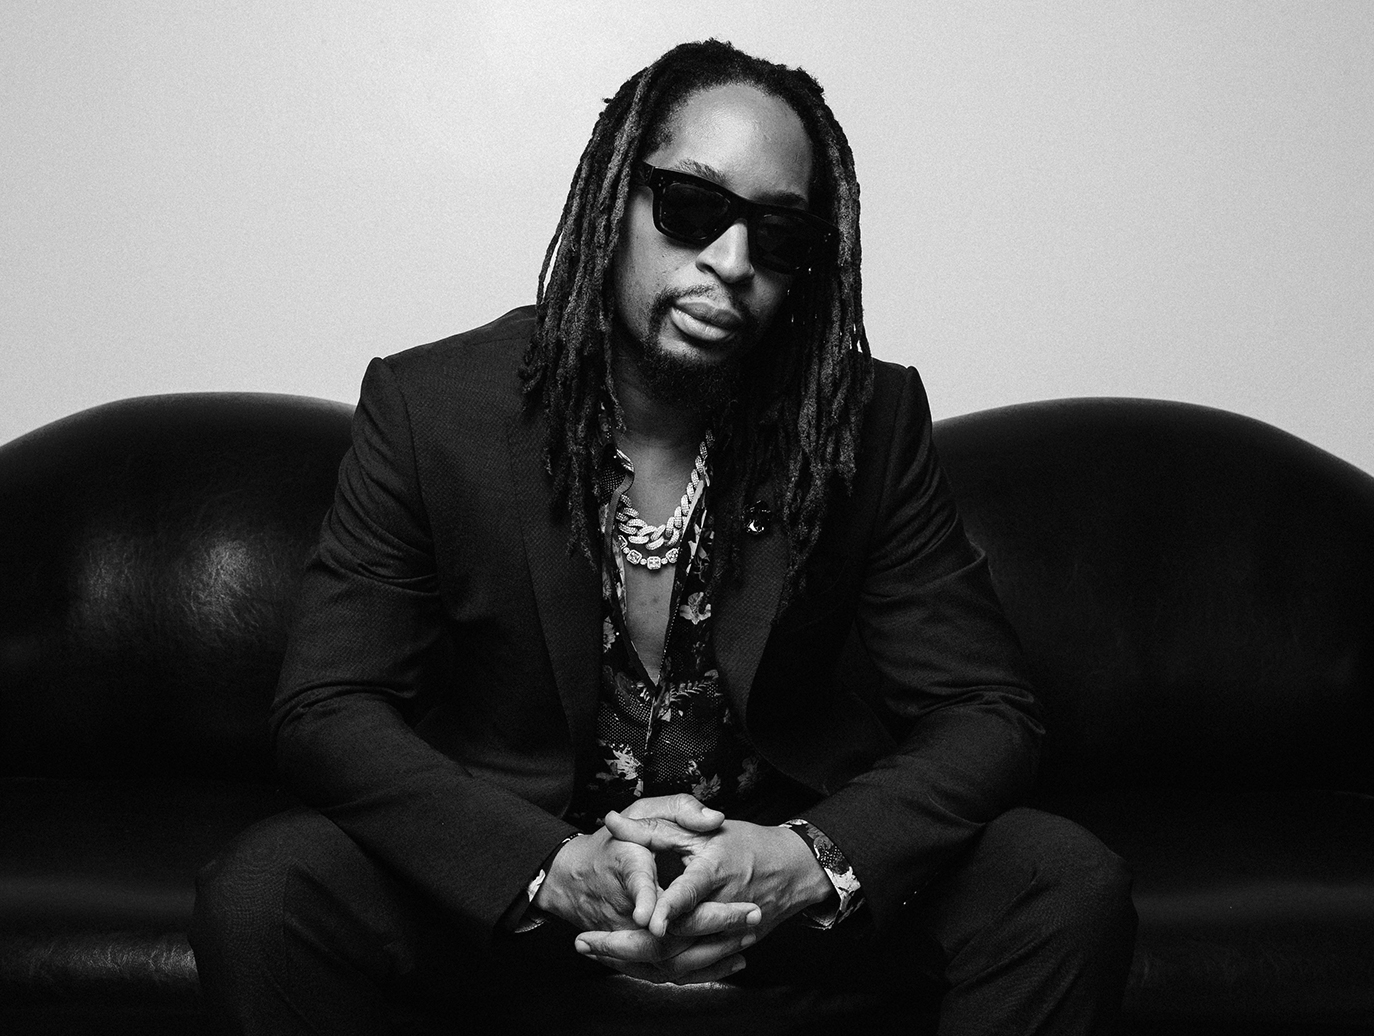 lil-jon-honoree-final.jpg